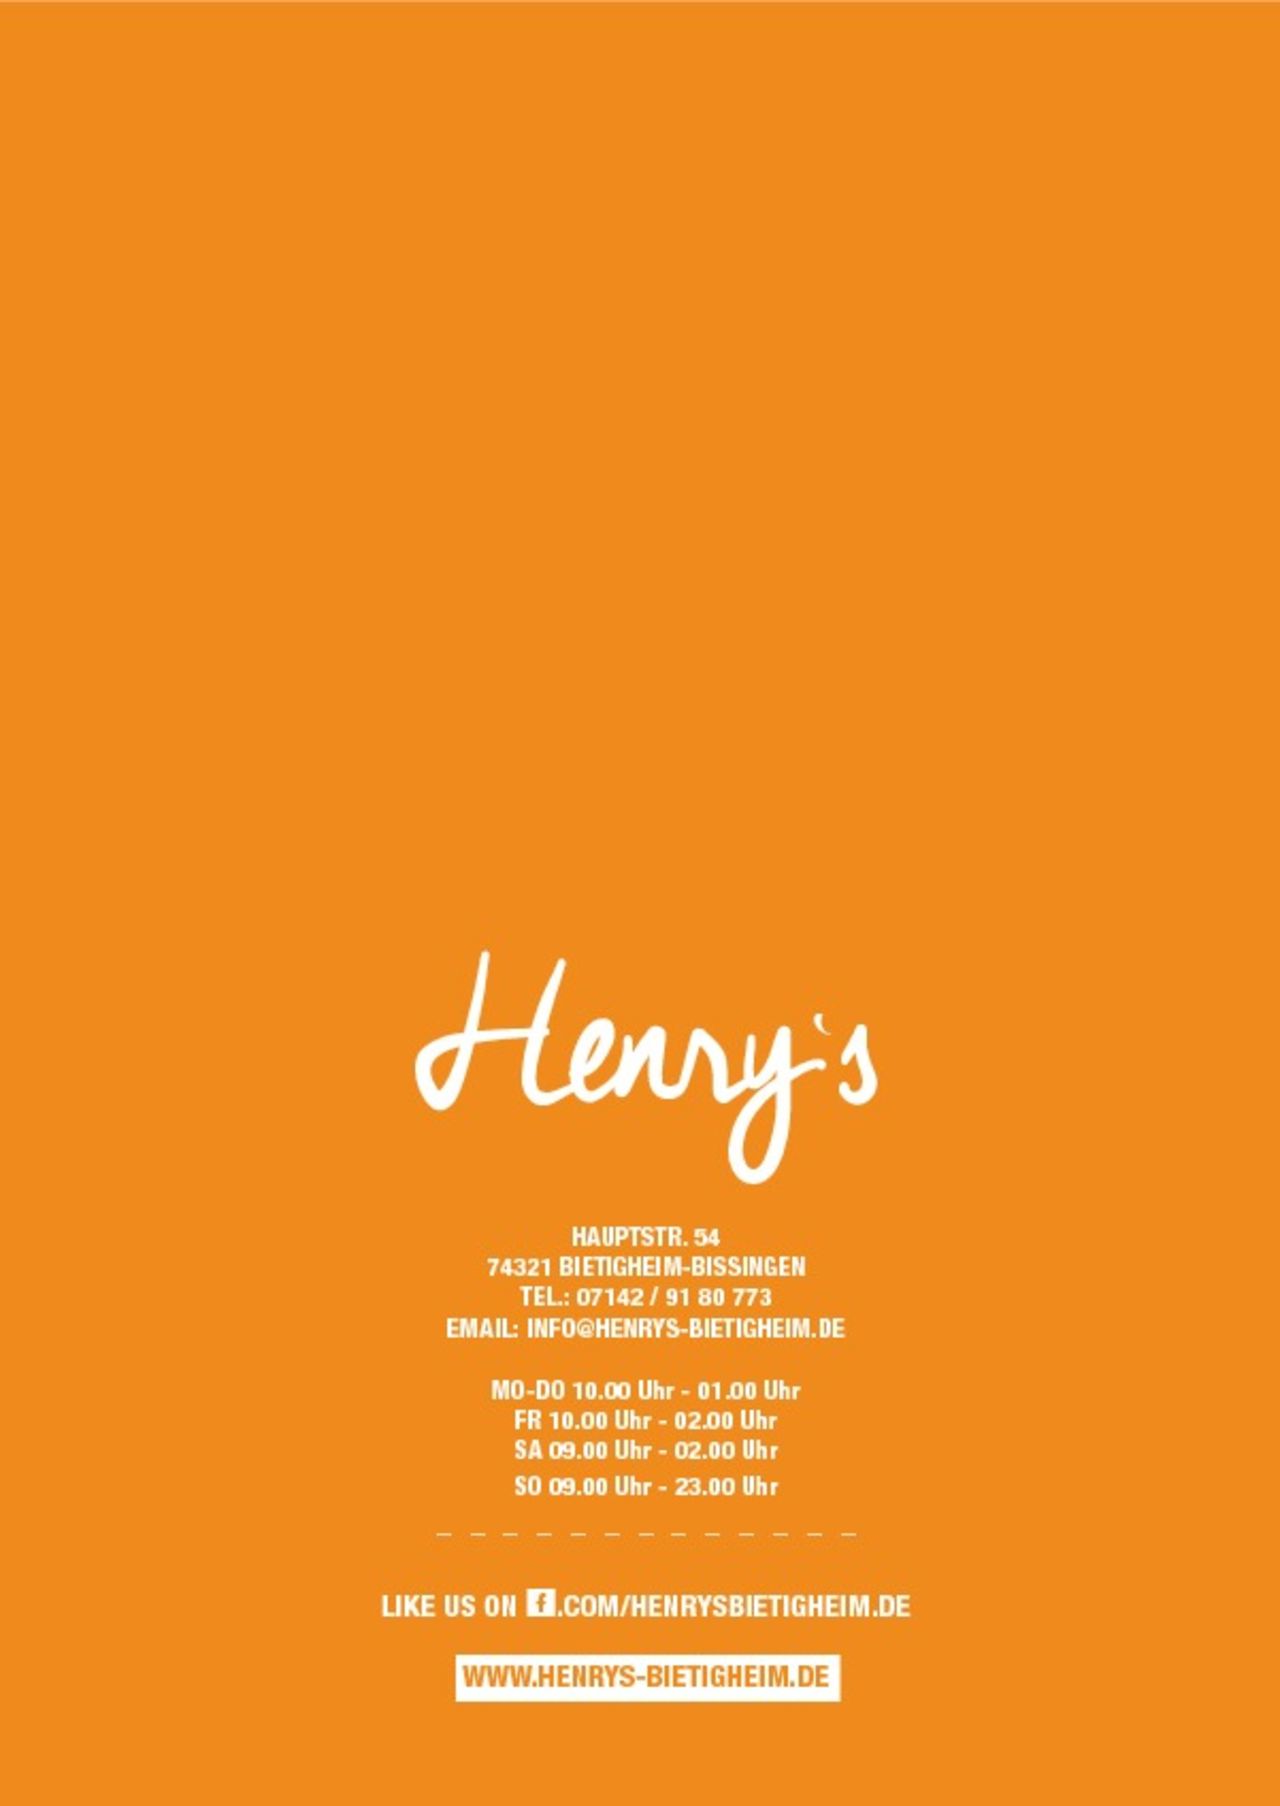 A photo of Henry's